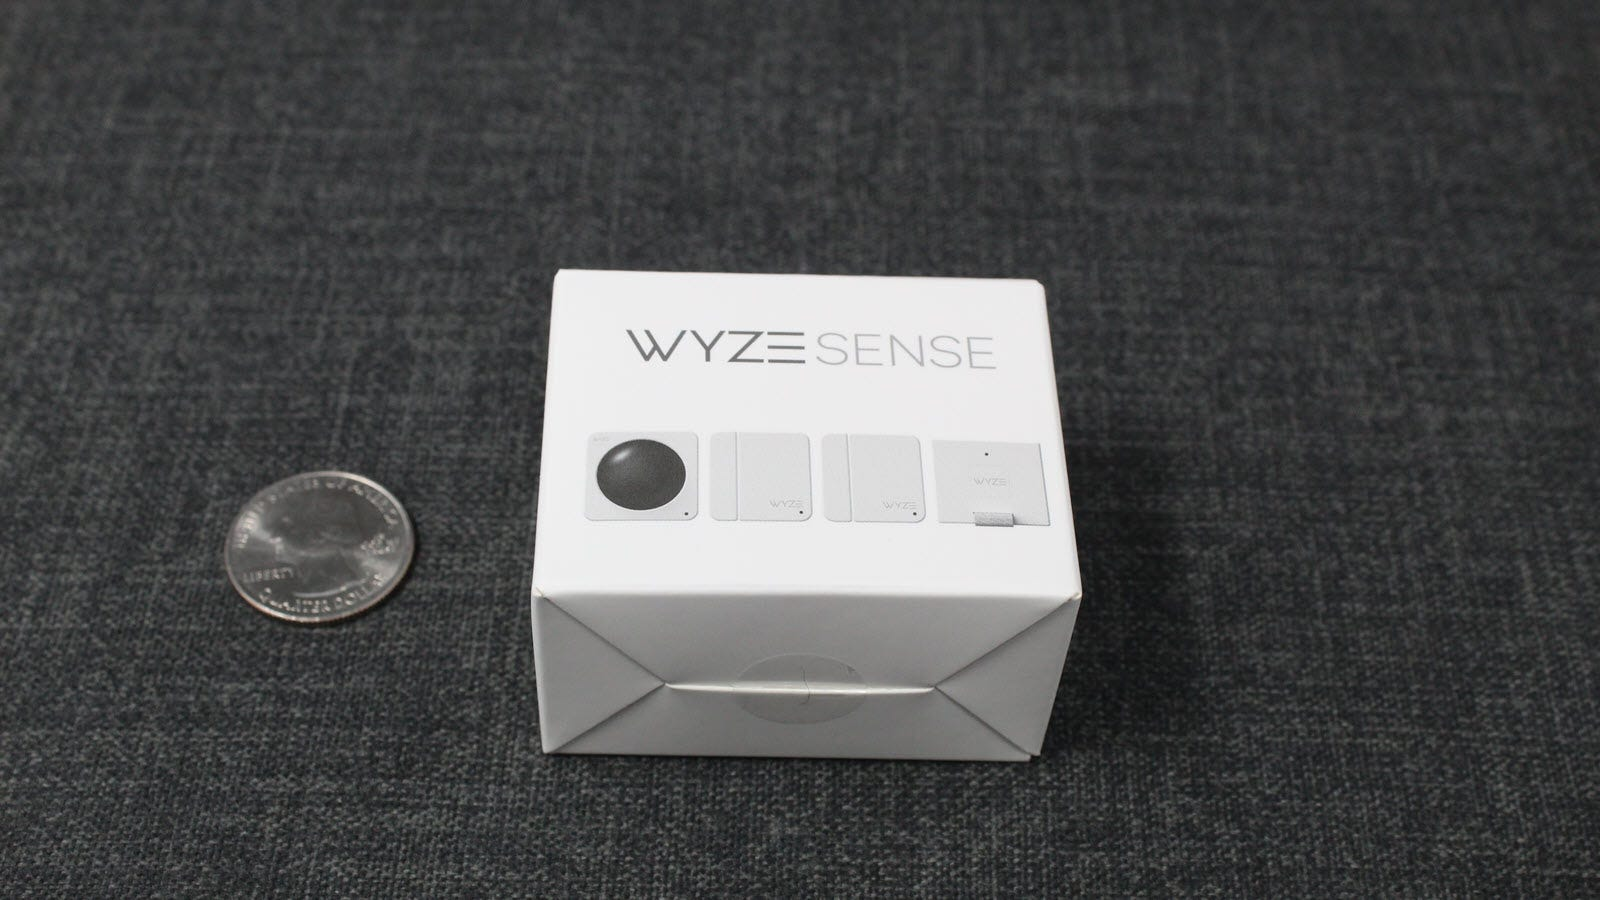 Wyze Sense box next to a quarter, showing how small it is.